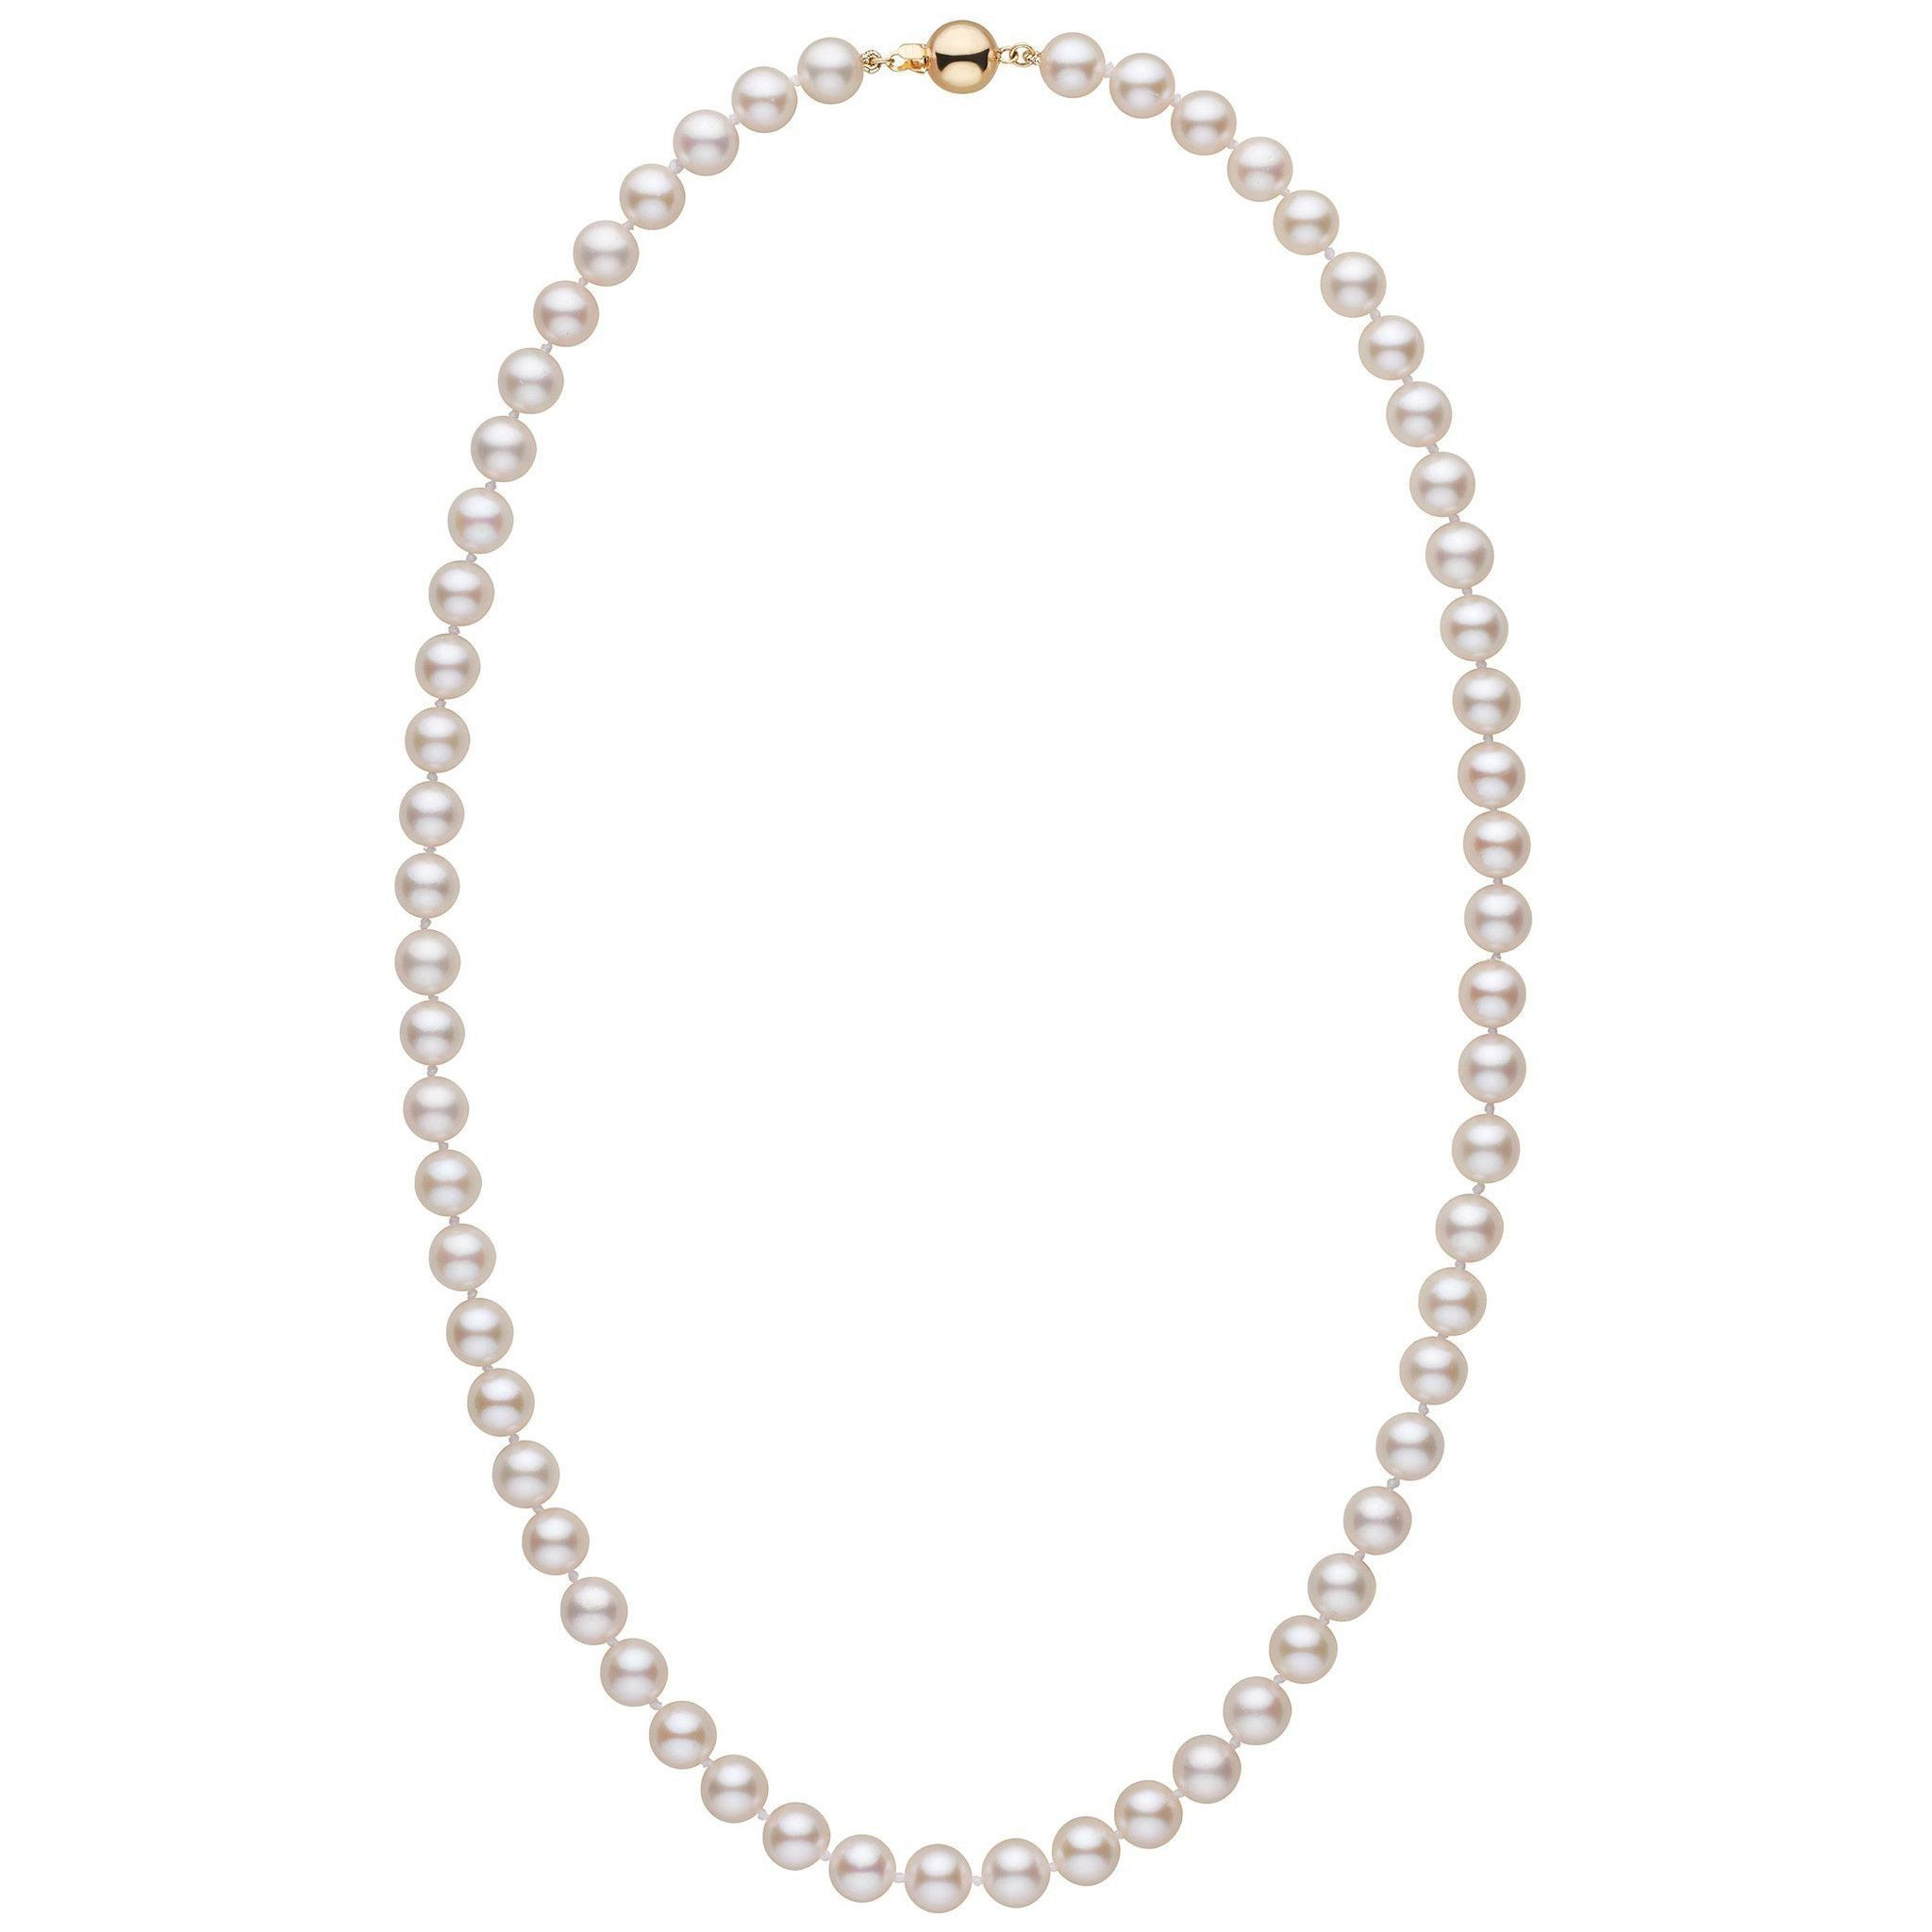 7.0-7.5 mm White Akoya 22 inch AA+ Pearl Necklace